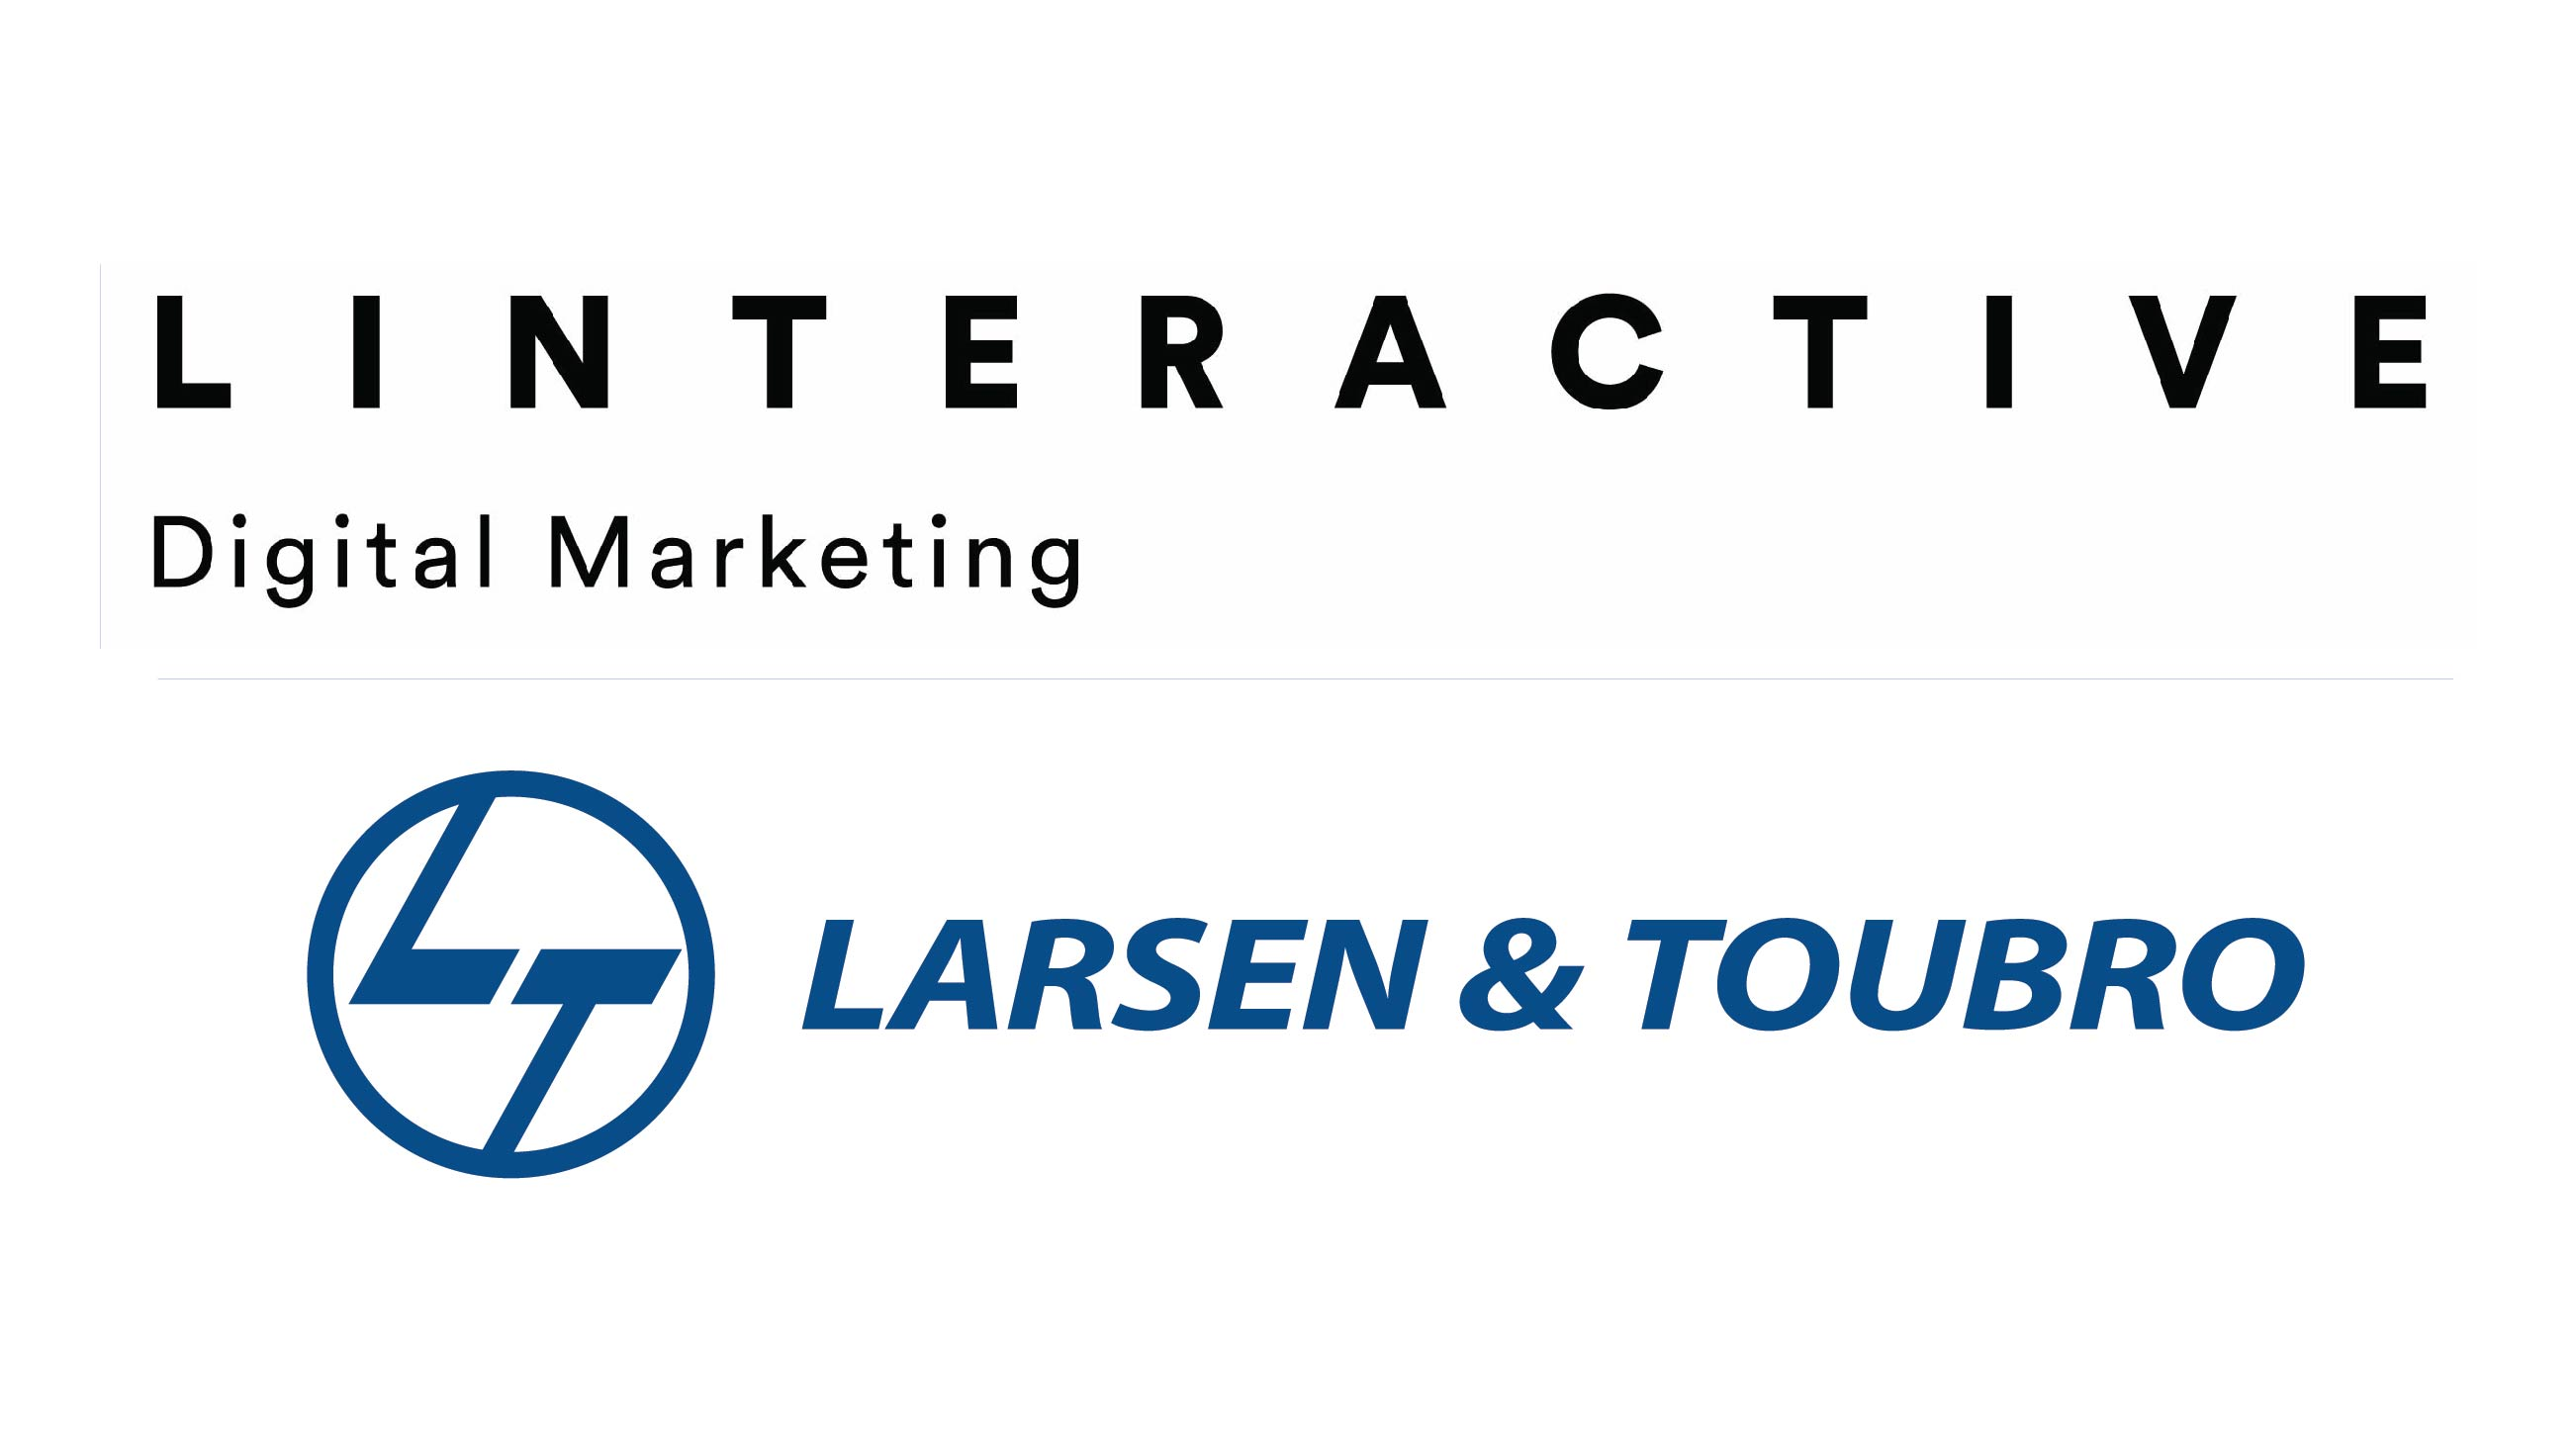 L&T appoints LinTeractive as Digital Marketing agency